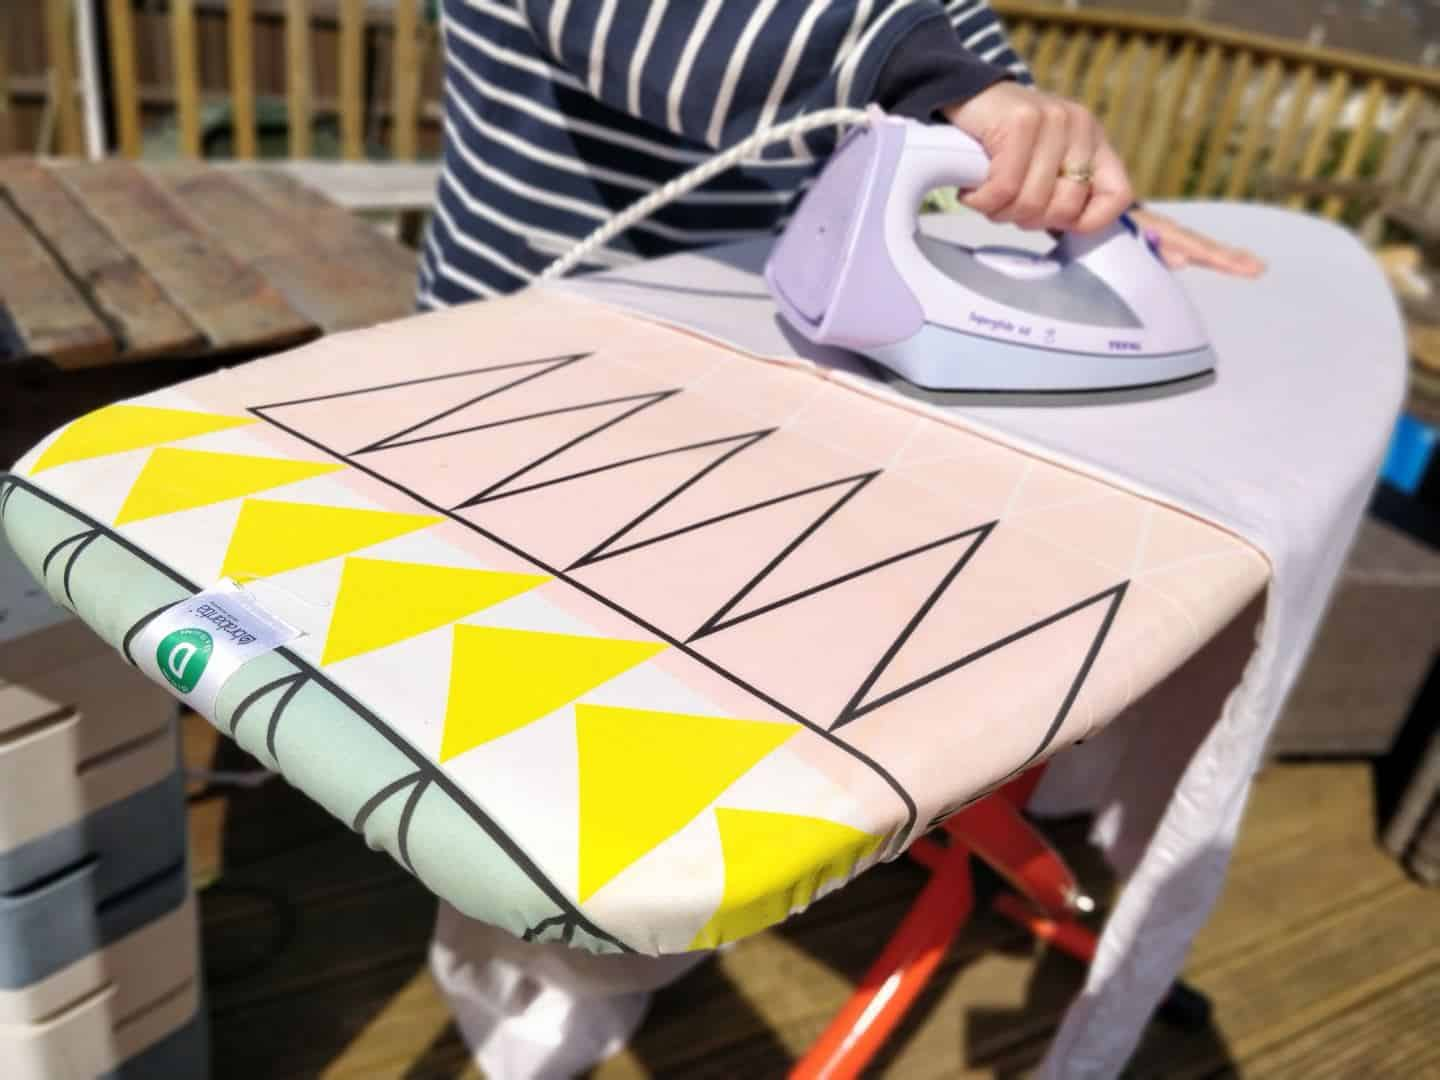 Al fresco activities include ironing on the deck with a Brabantia ironing board